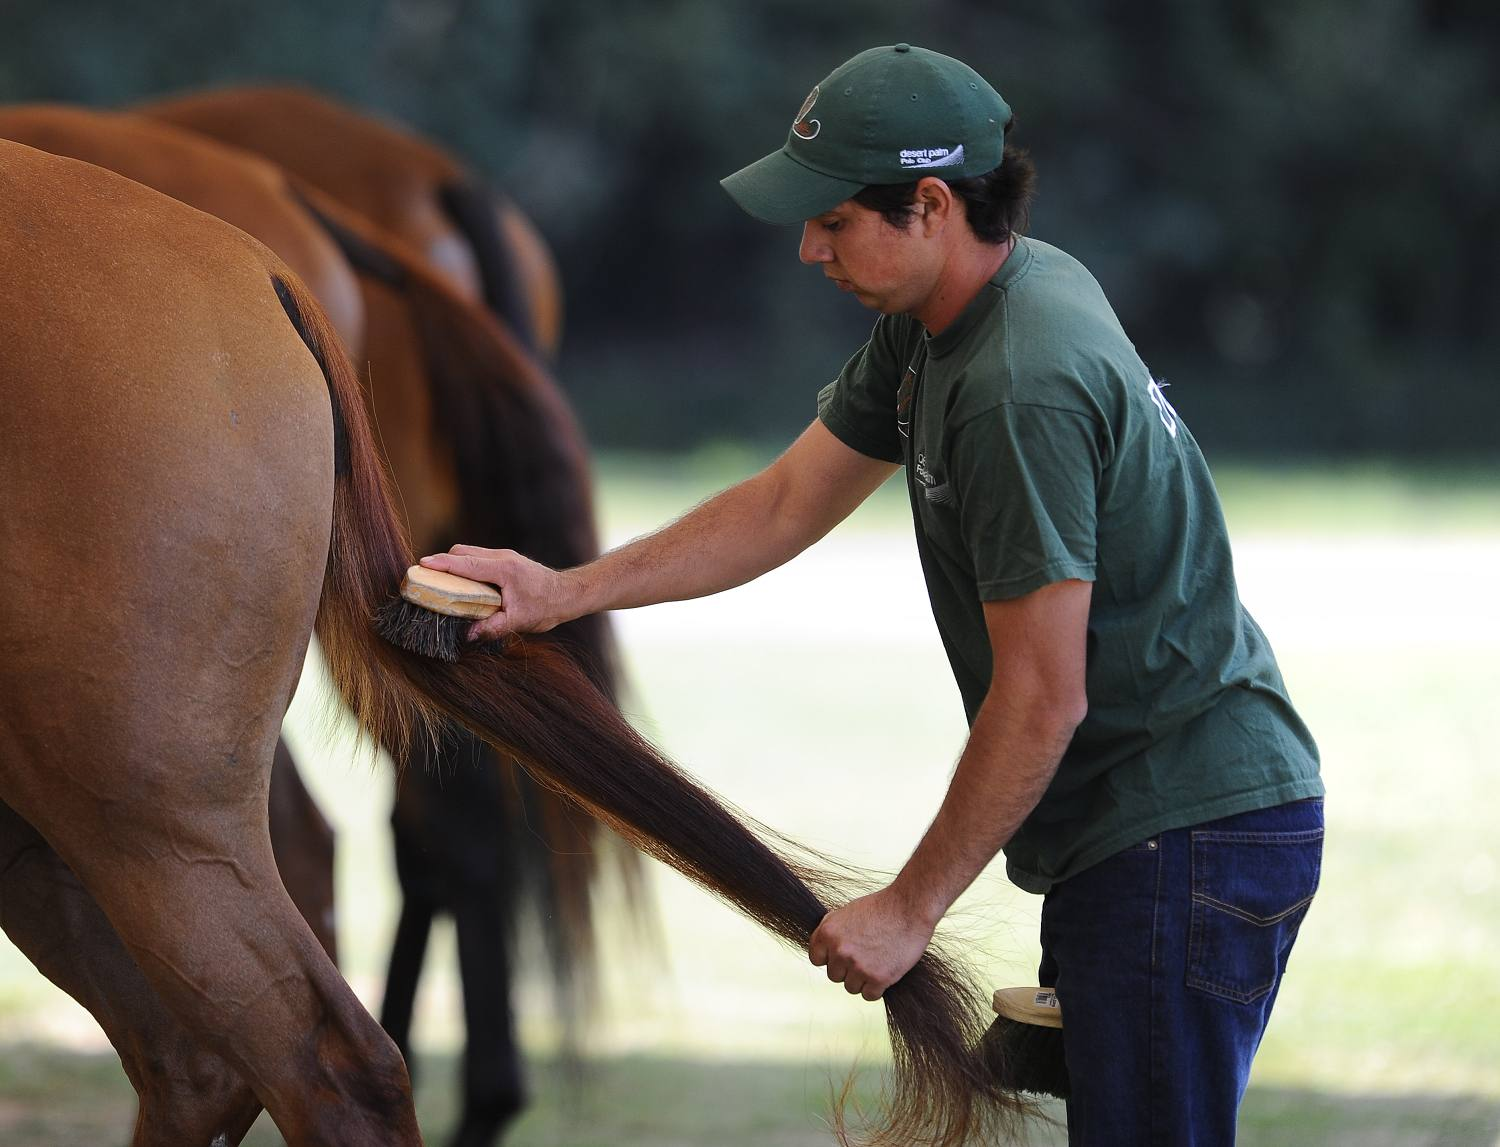 Man grooming horse's tail